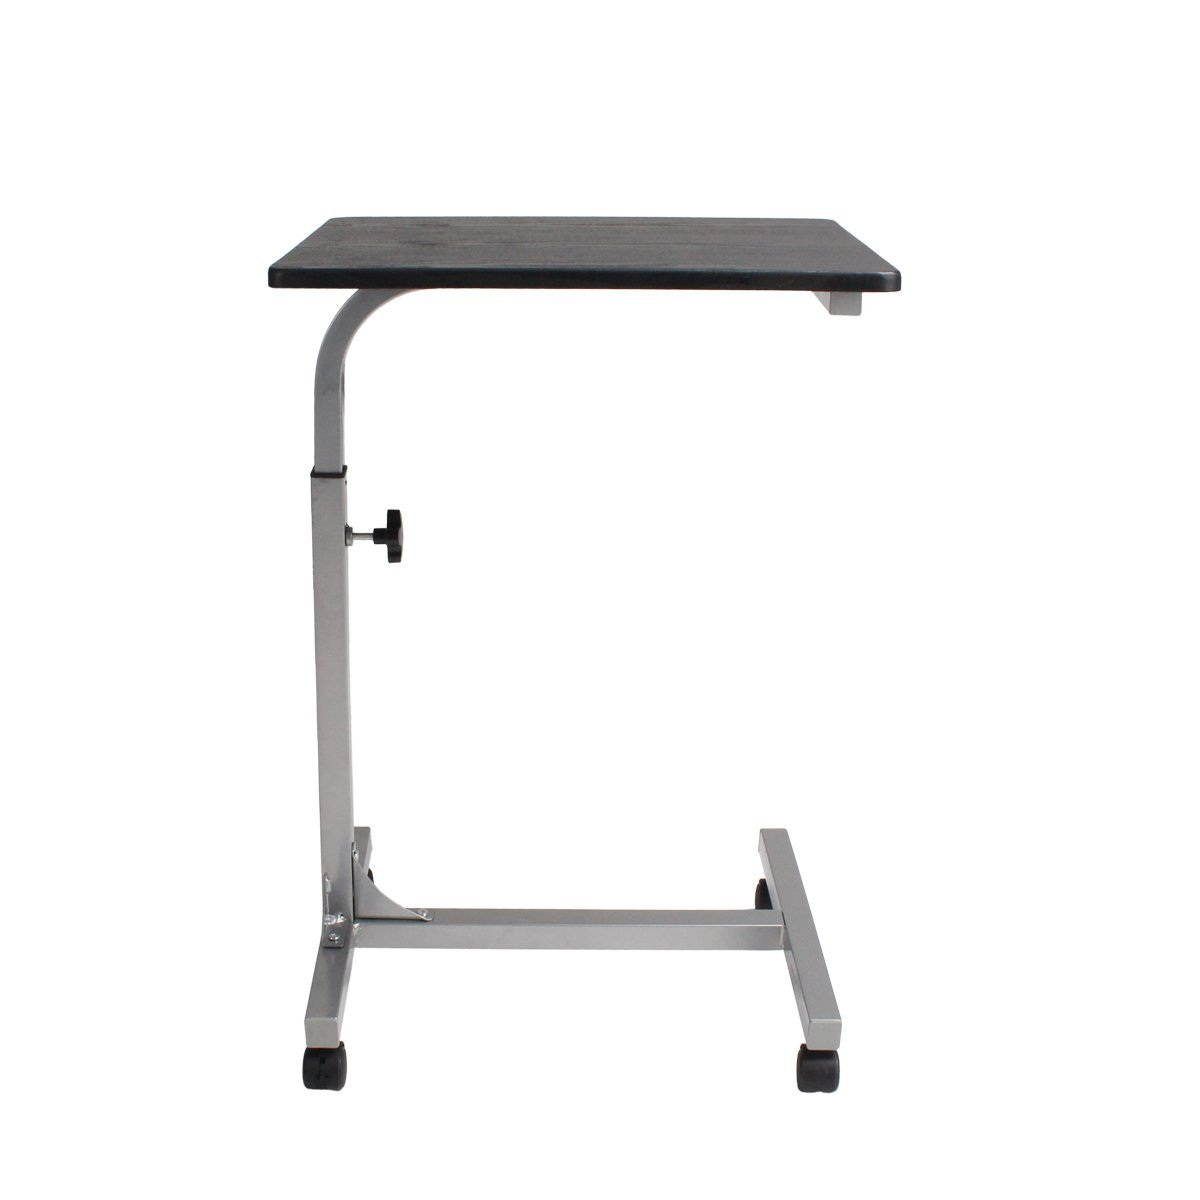 LQZ(TM) Height Adjustable Computer Desk Cart Stand Laptop Table L18.89-W14.56-H27.55 To 32.08-Inch